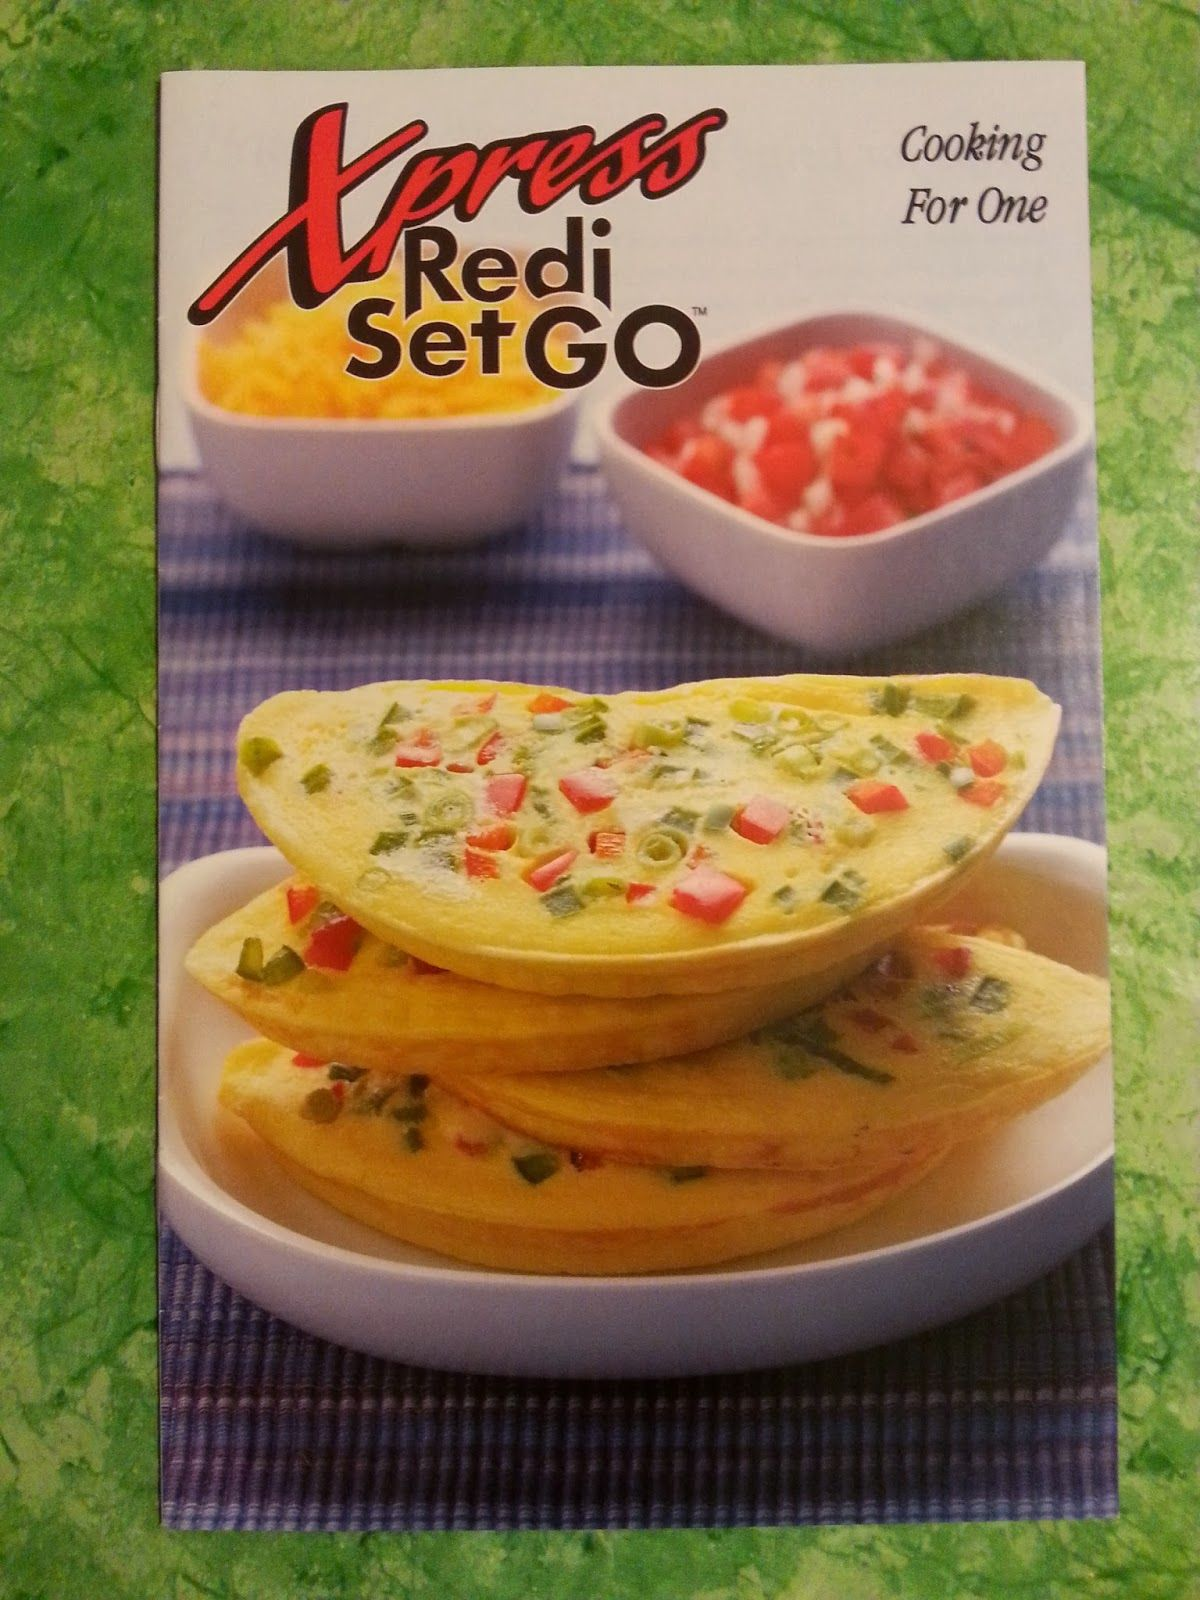 Redi-Set-Go Recipes: EXPIRED! - March 2014 Giveaway